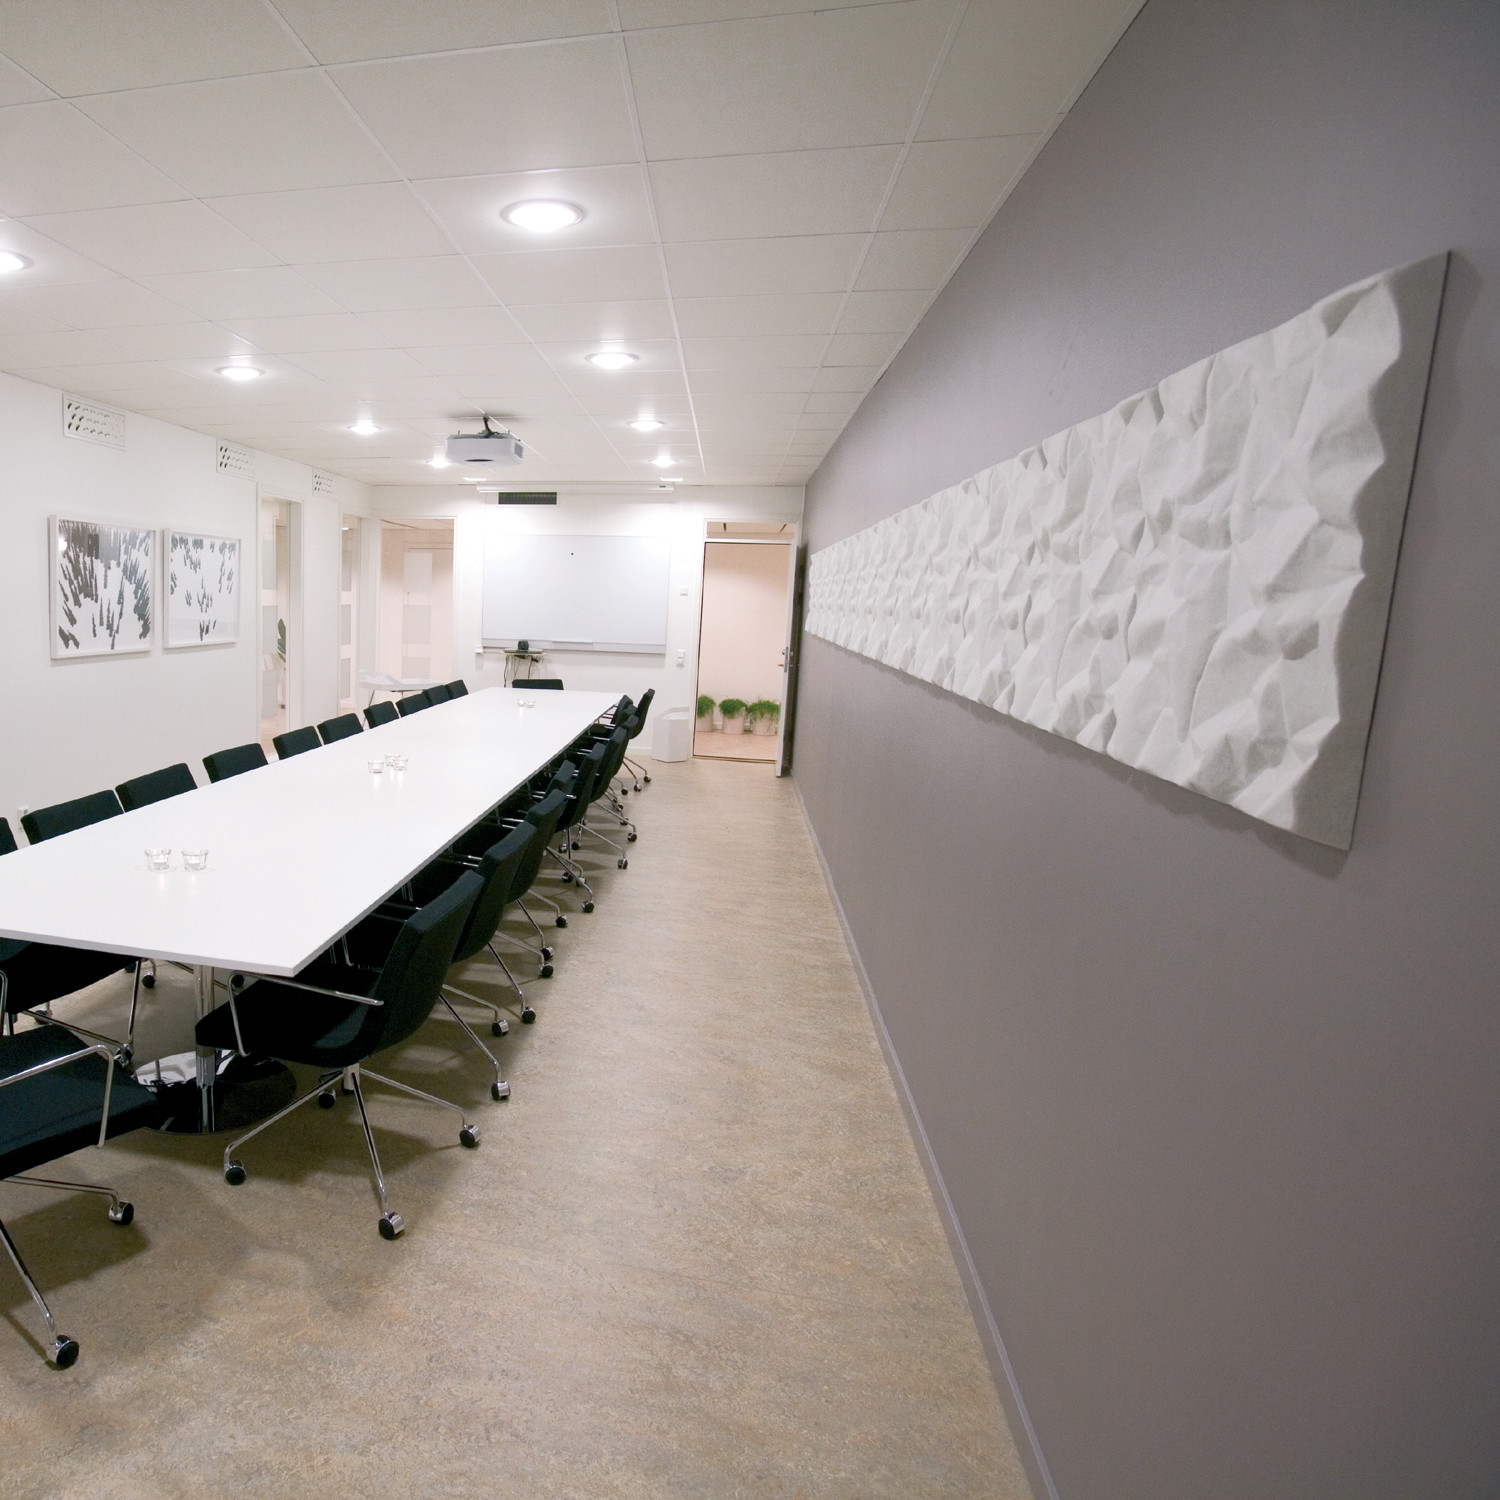 Soundwave Scrunch Acoustic Wall Panels